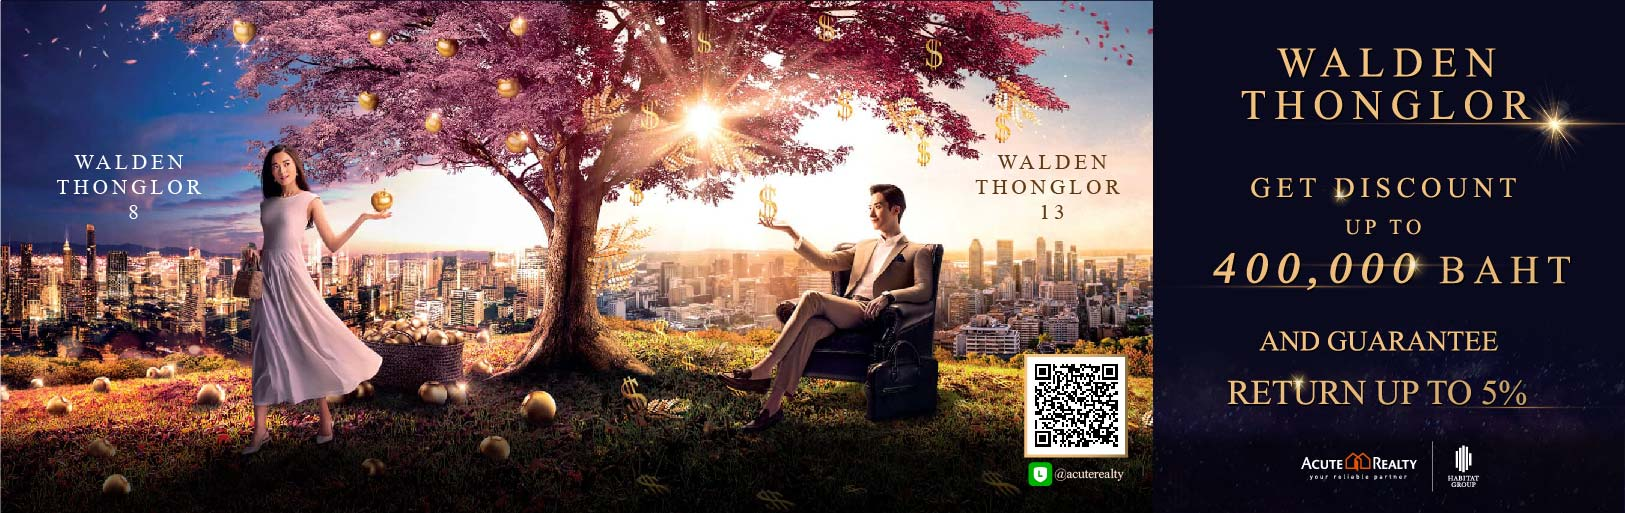 Walden Thonglor